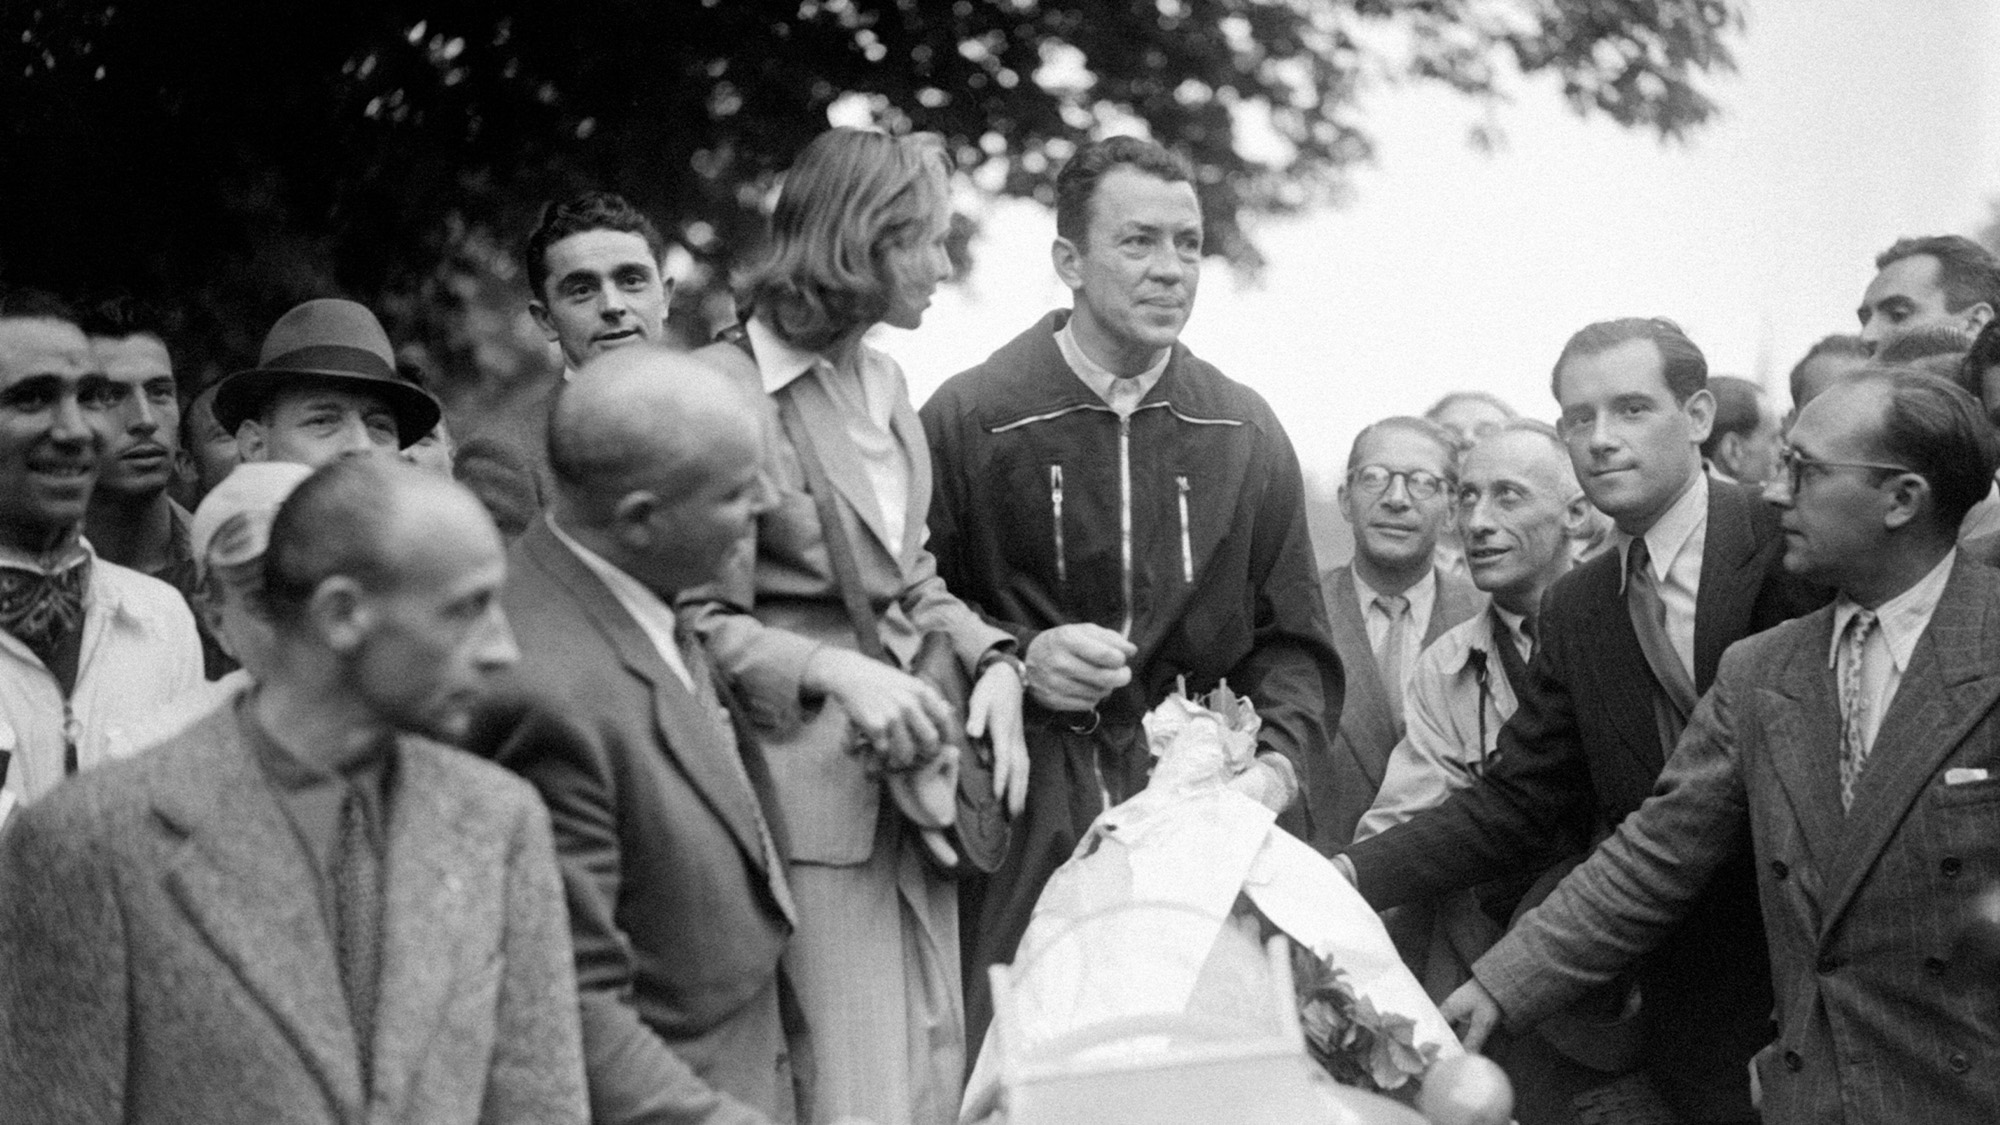 Jean-Pierre Wimille after winning at the Bois de Boulogne in 1945